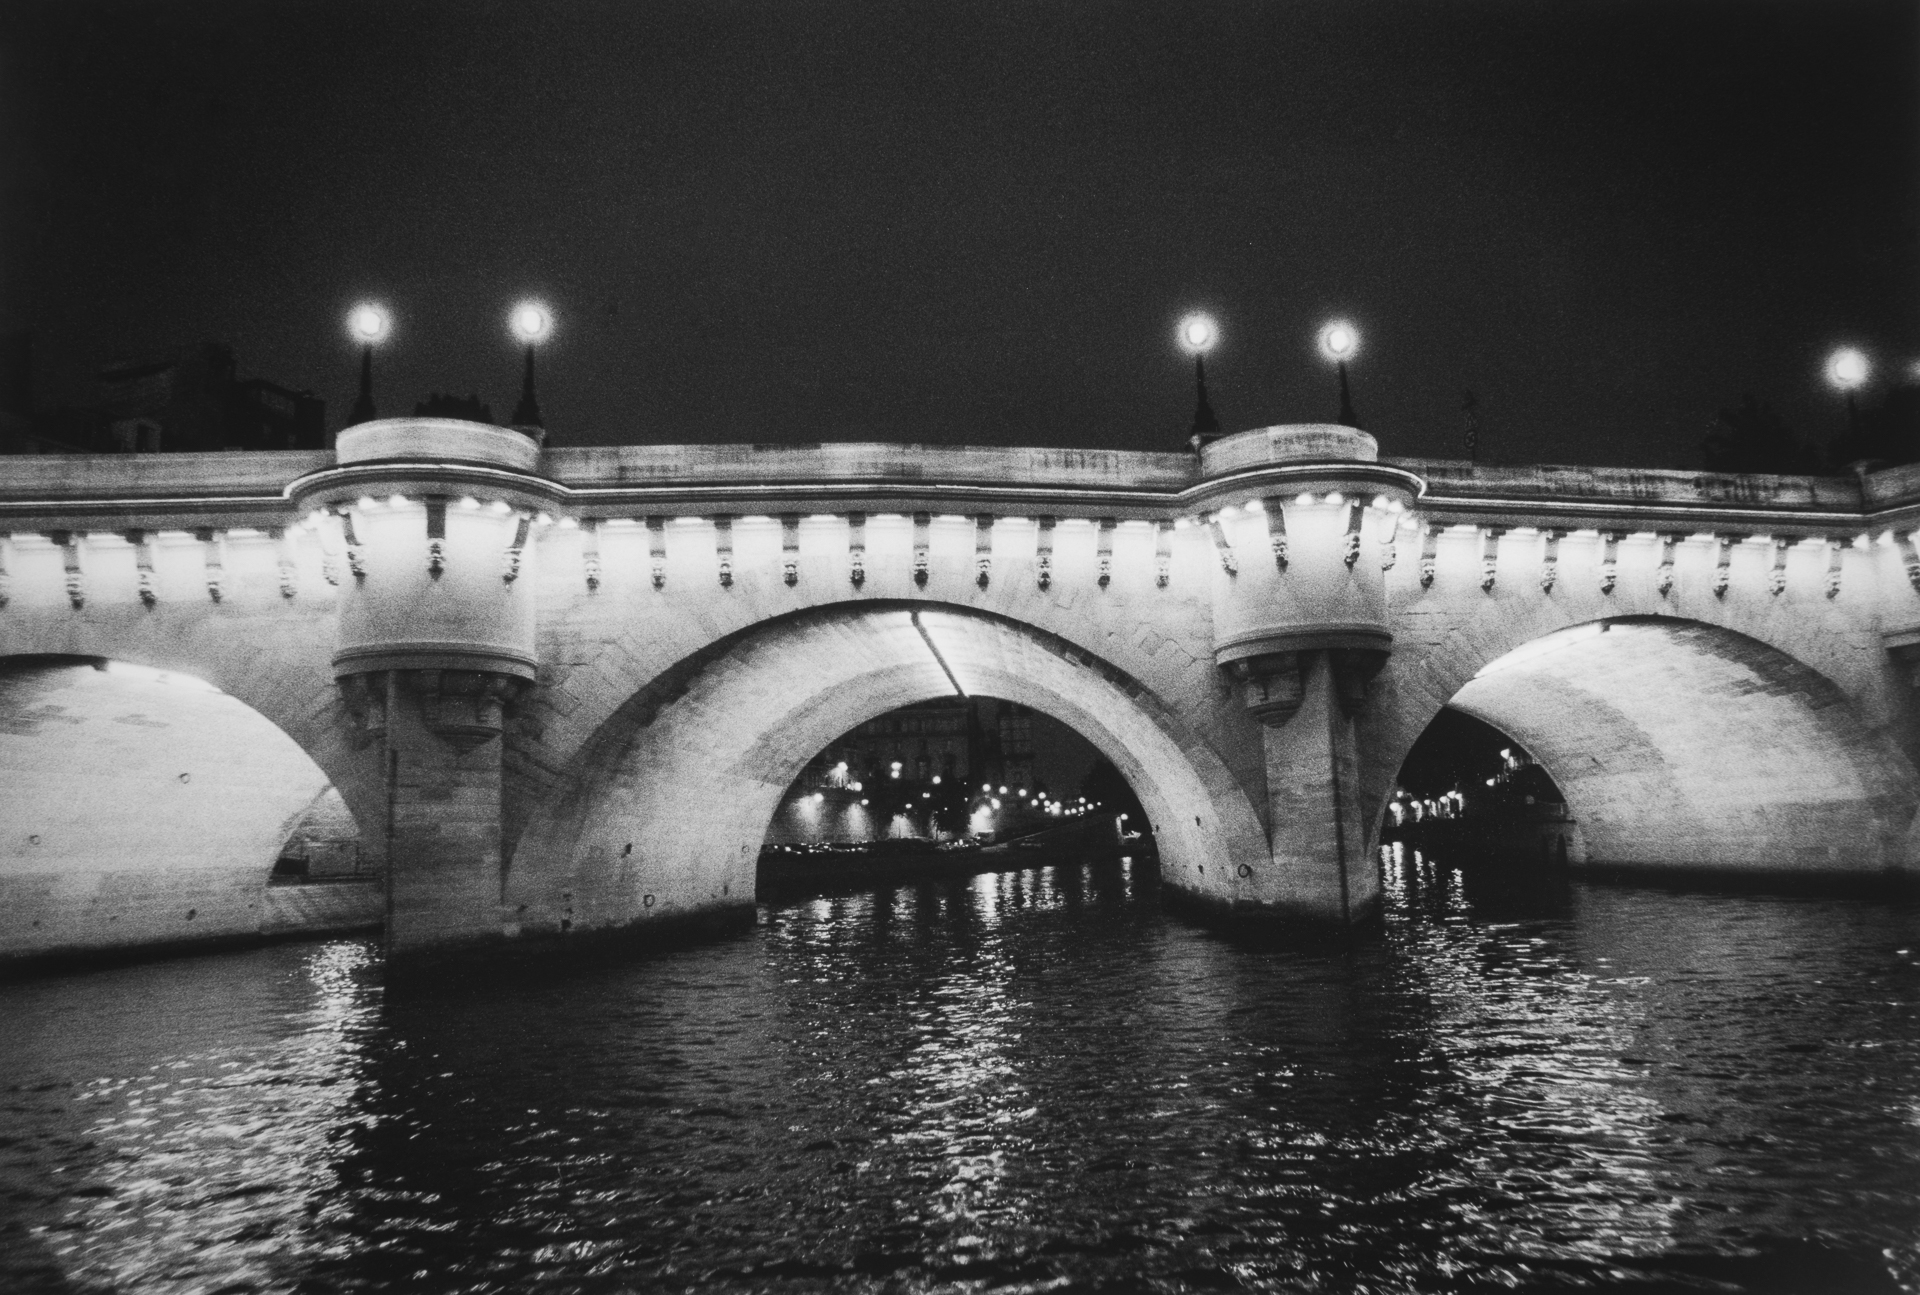 Pont Neuf - Paris, France